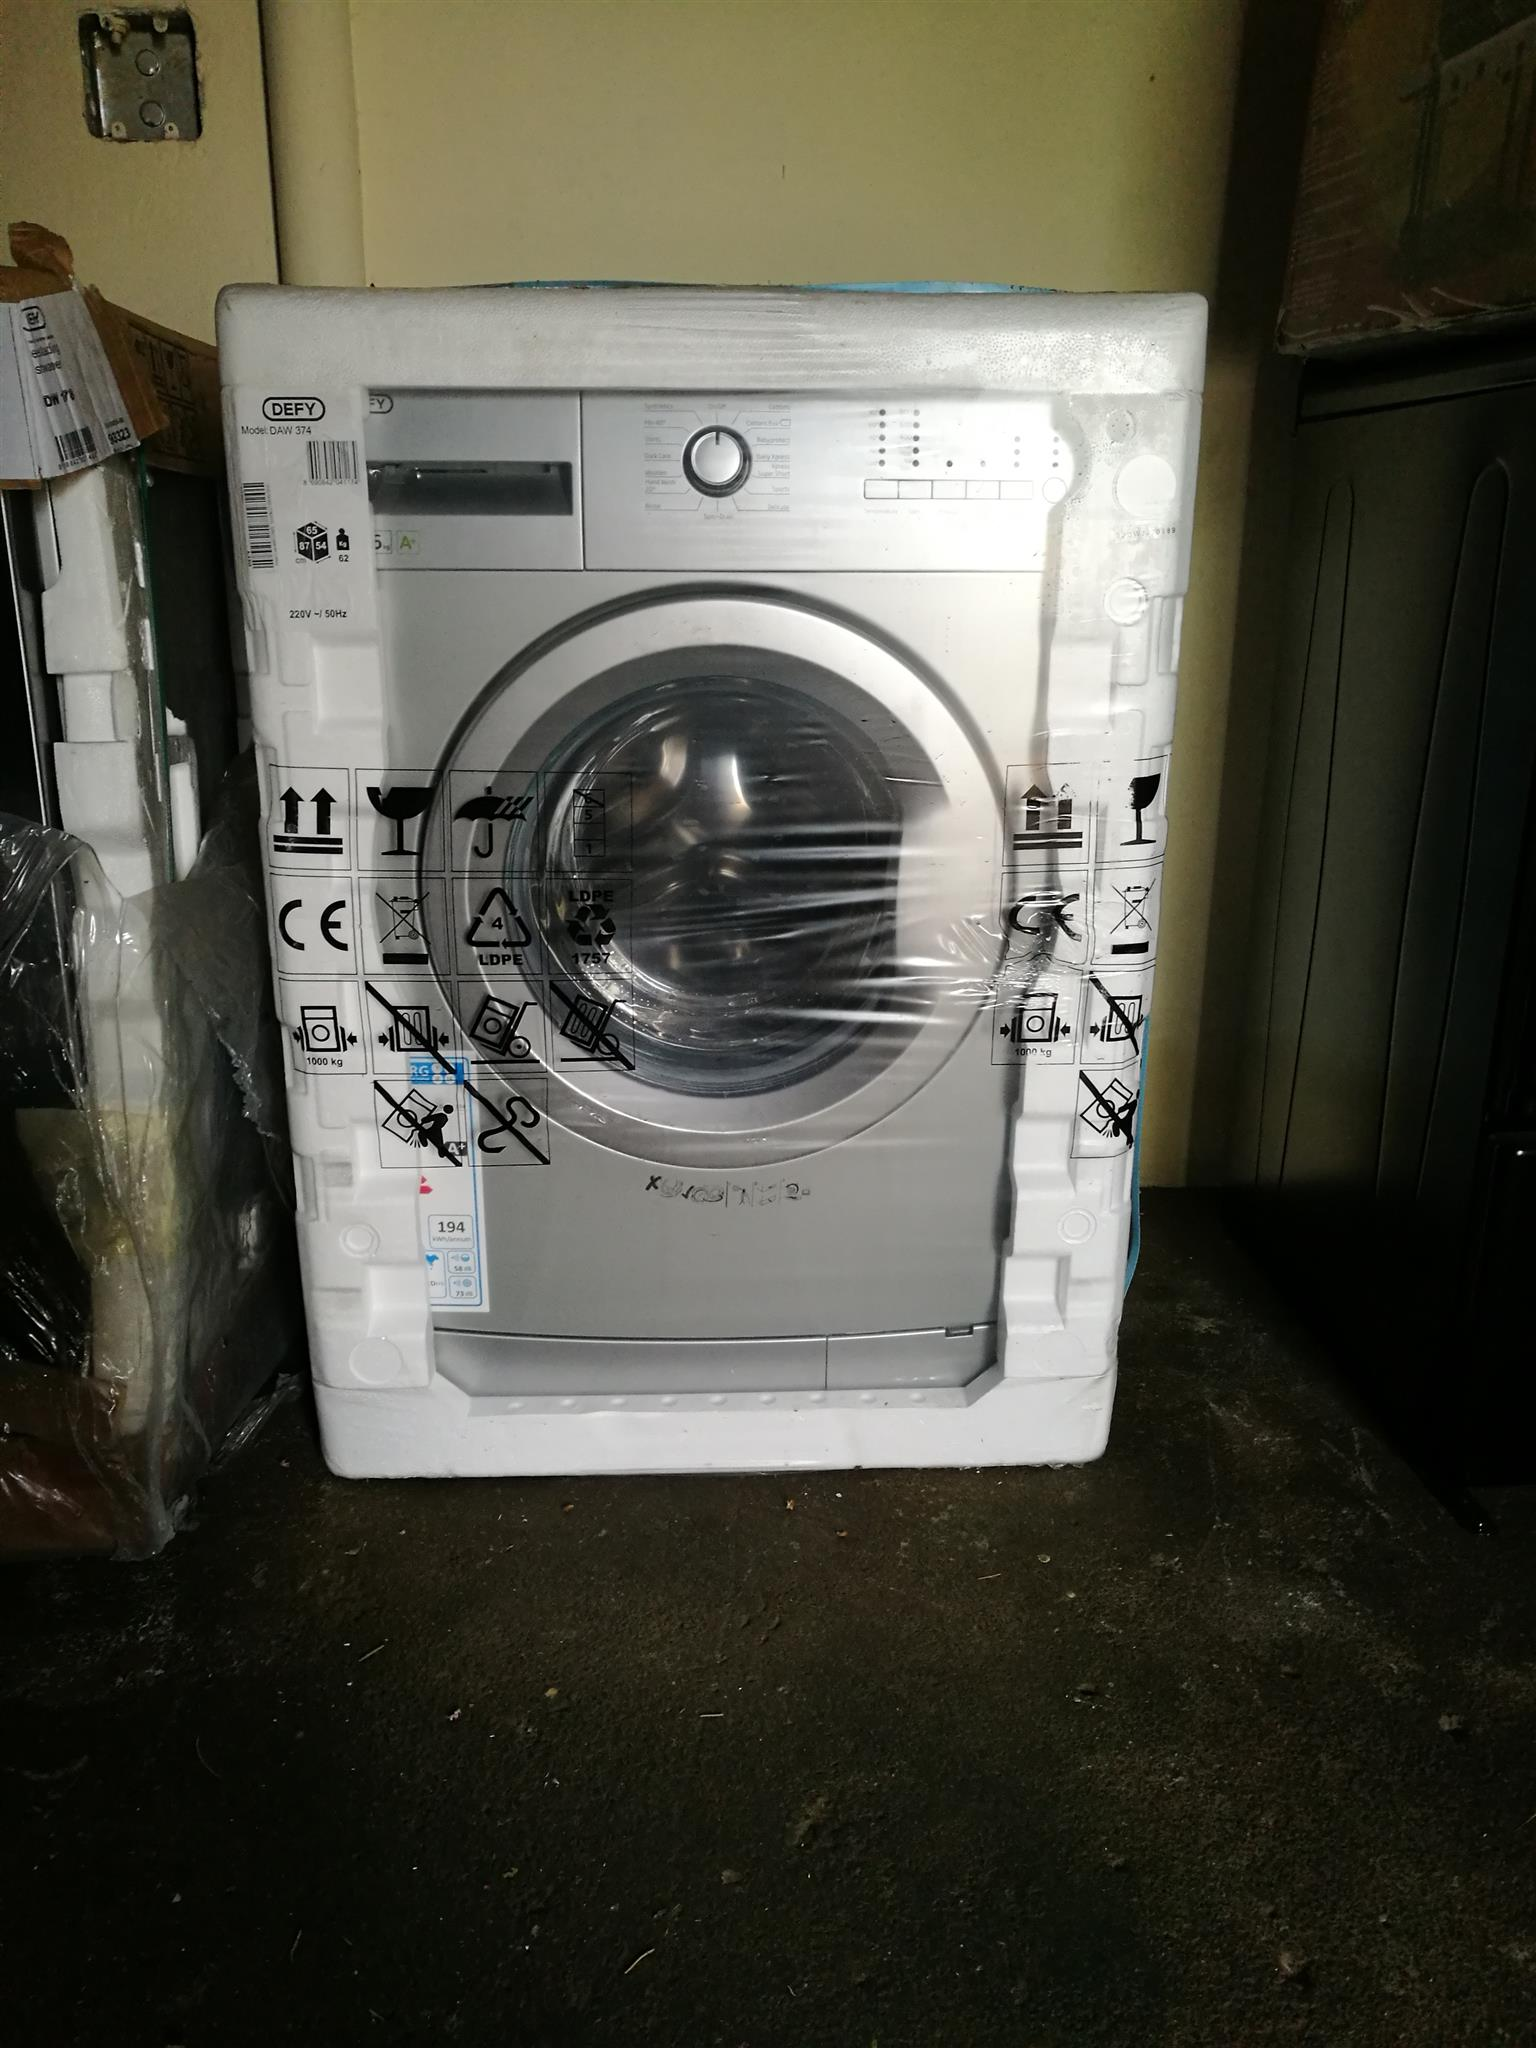 Defy washing machine